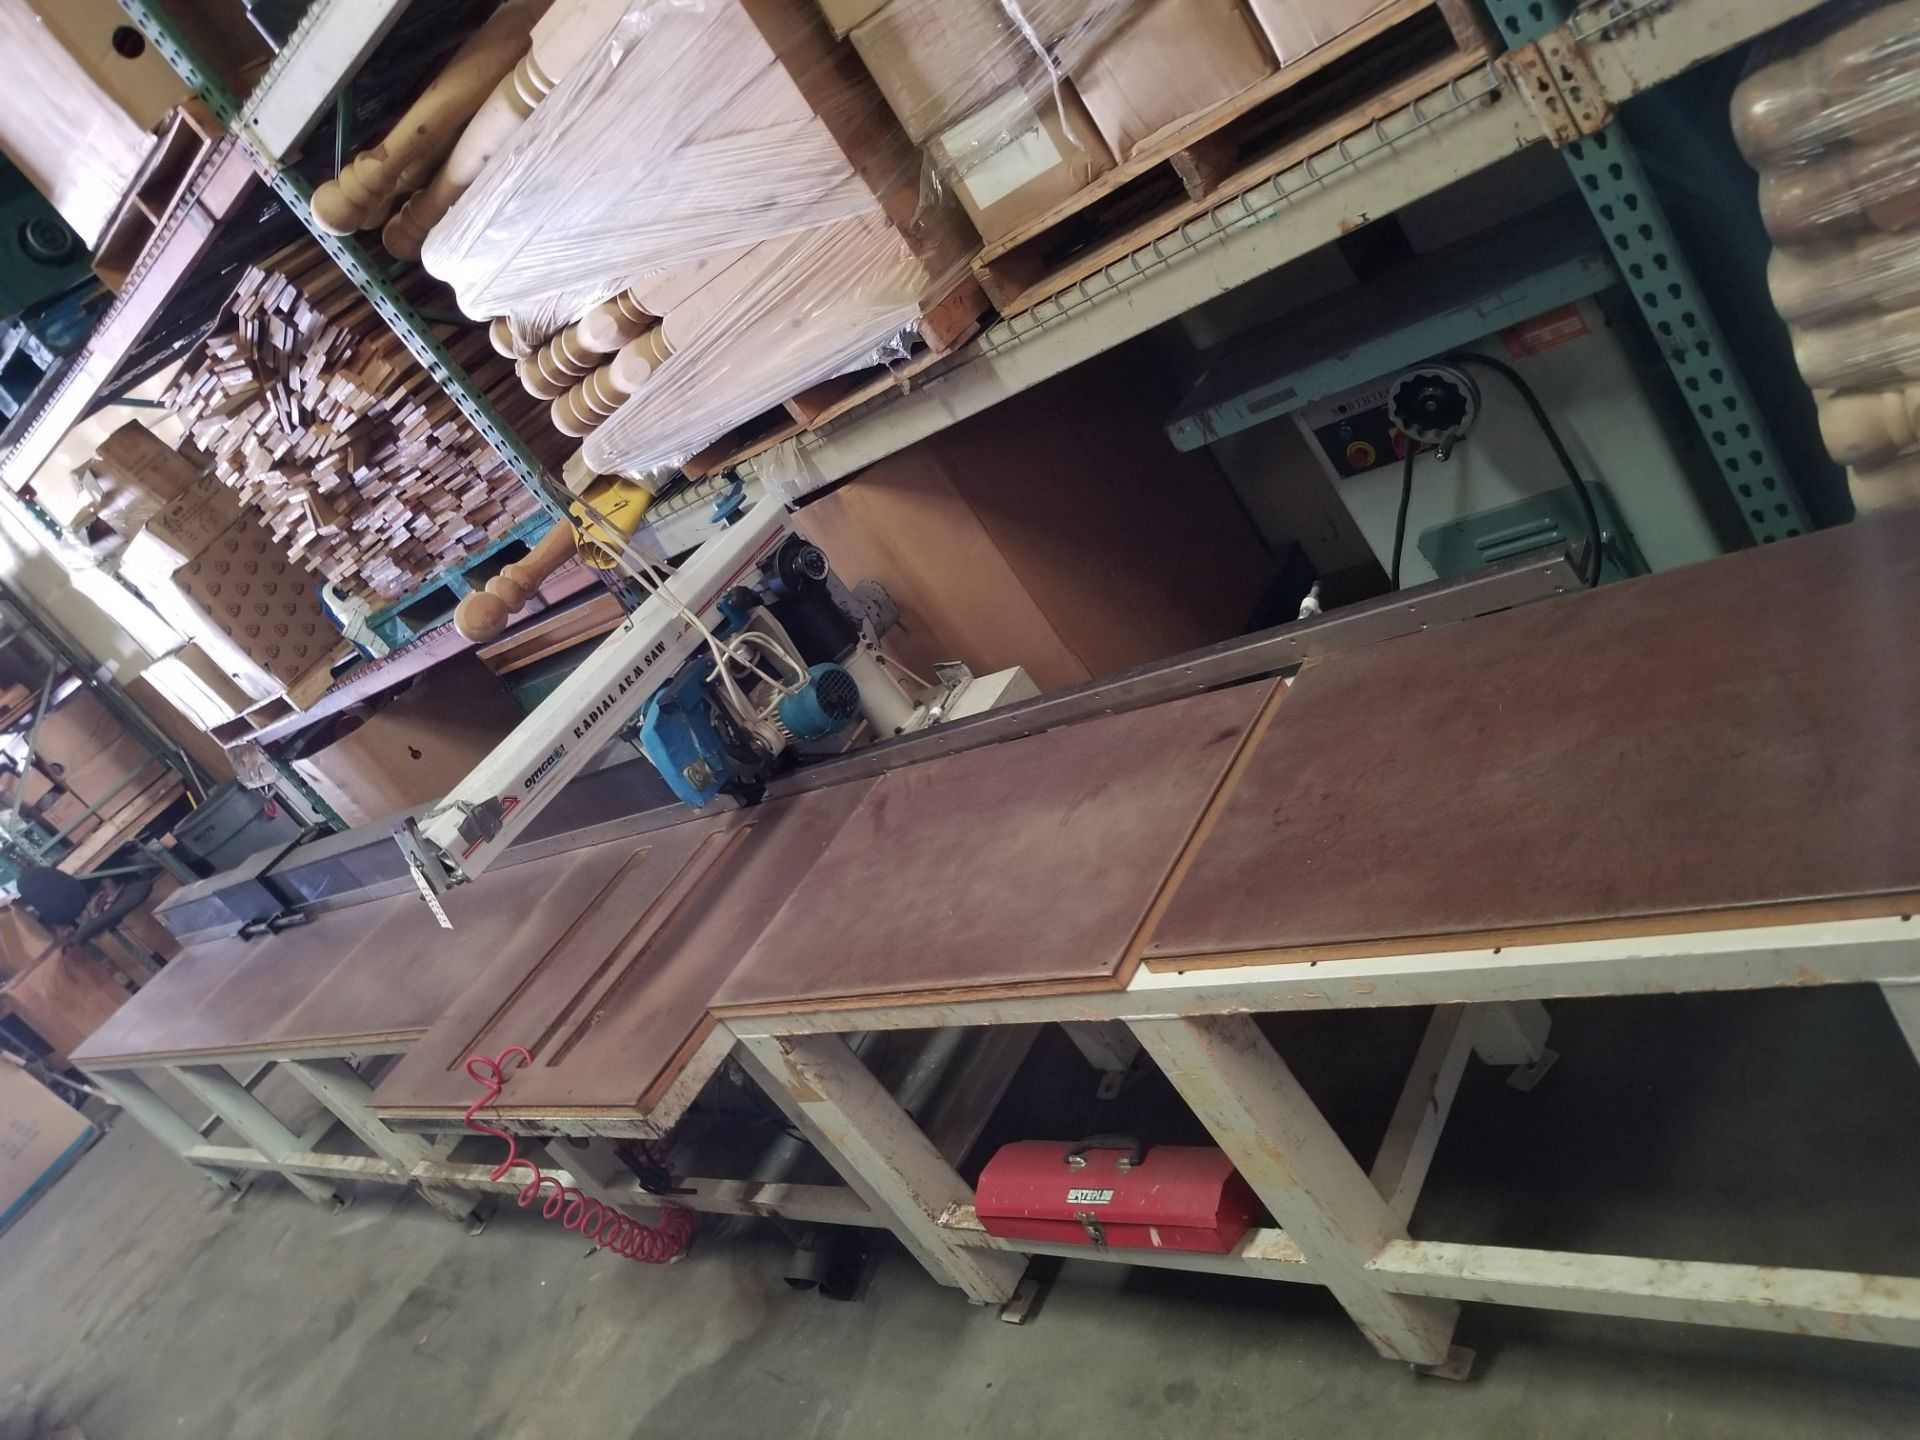 """Lot 11 - Omga 14"""" Radial Arm Saw # RN600, 3ph, with Pinnacle auto fence, 13' long"""